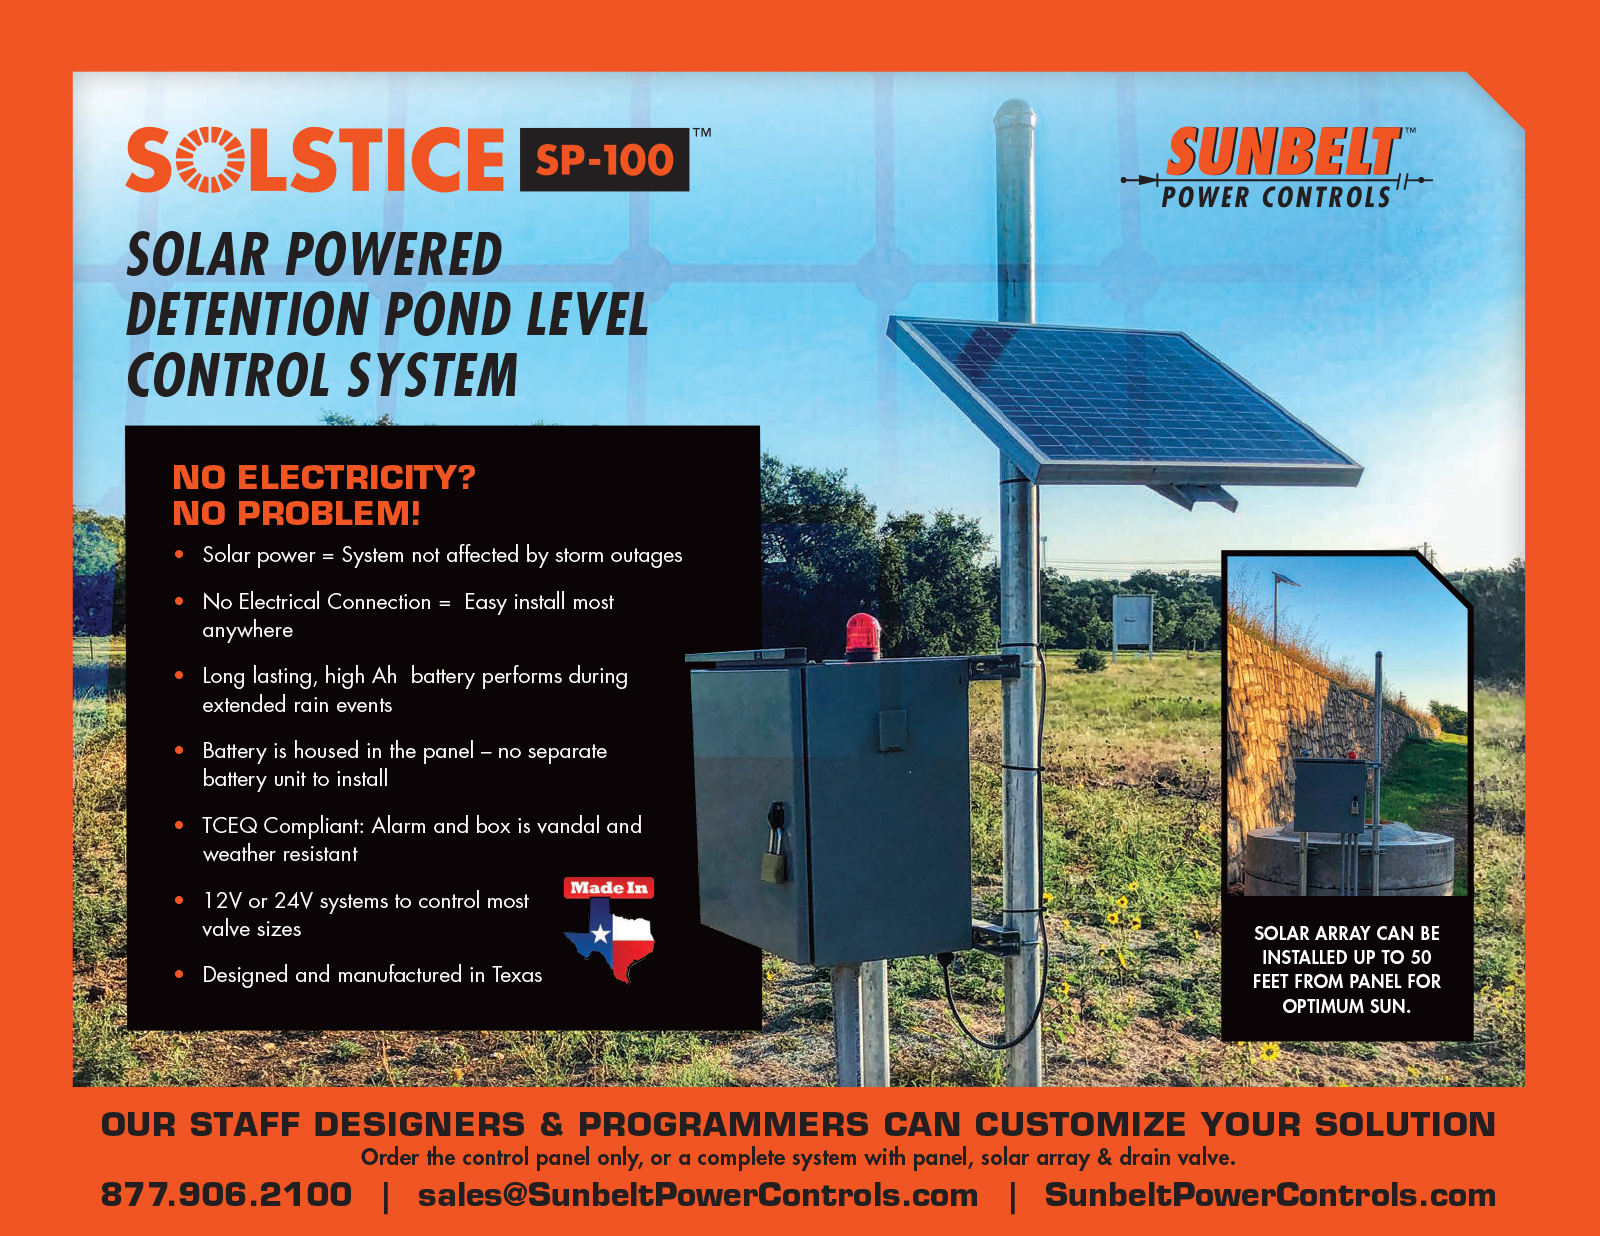 solstice-website